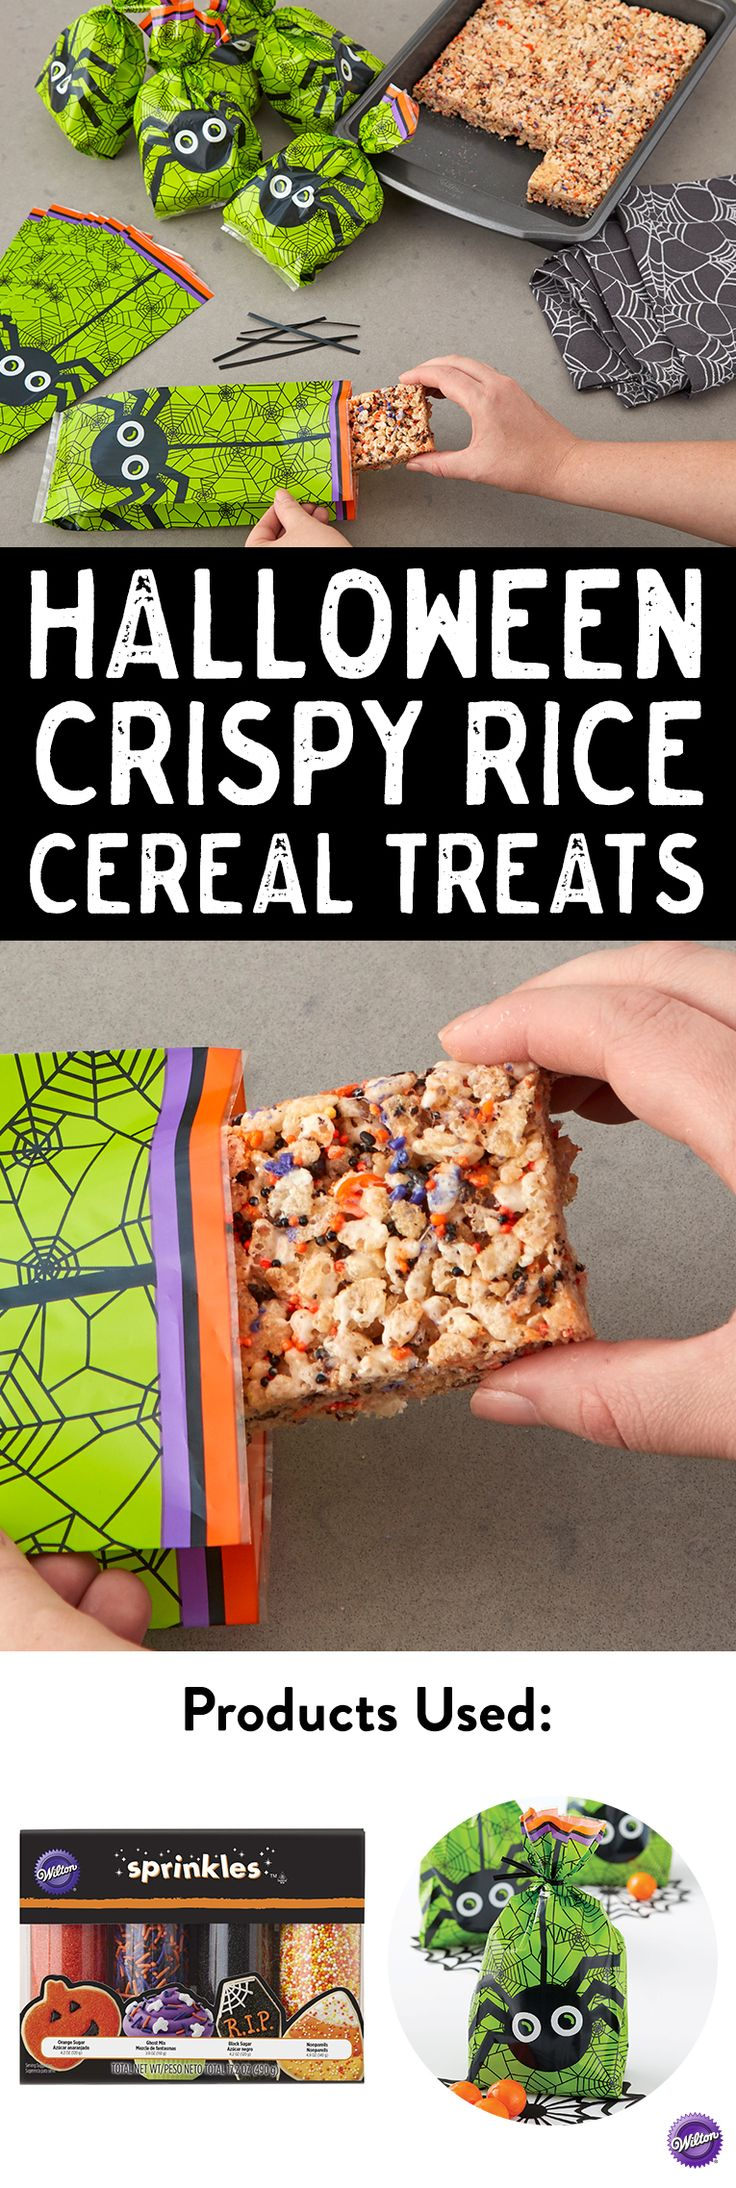 302 best images about spooky eats haunted treats on for Quick and easy halloween treats to make